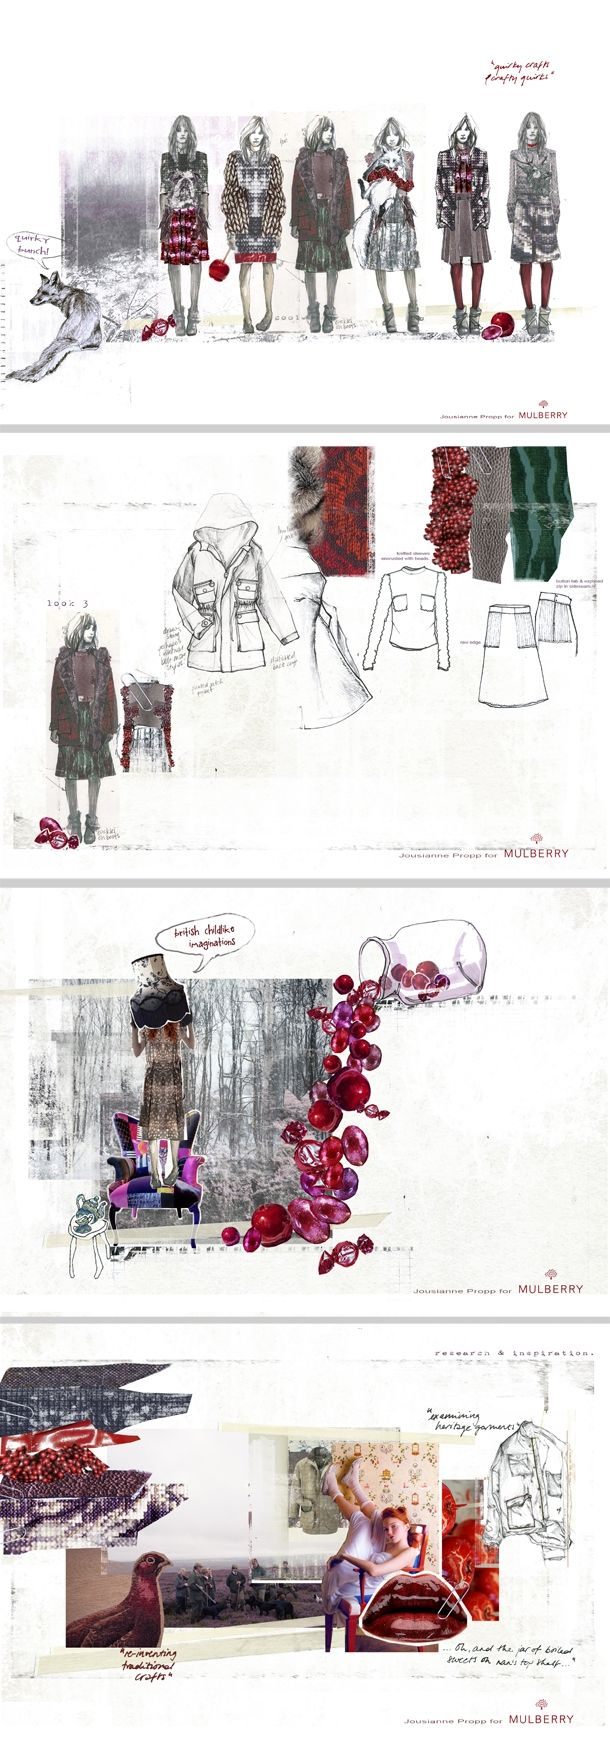 Fashion sketchbook work by Jousianne Propp #design